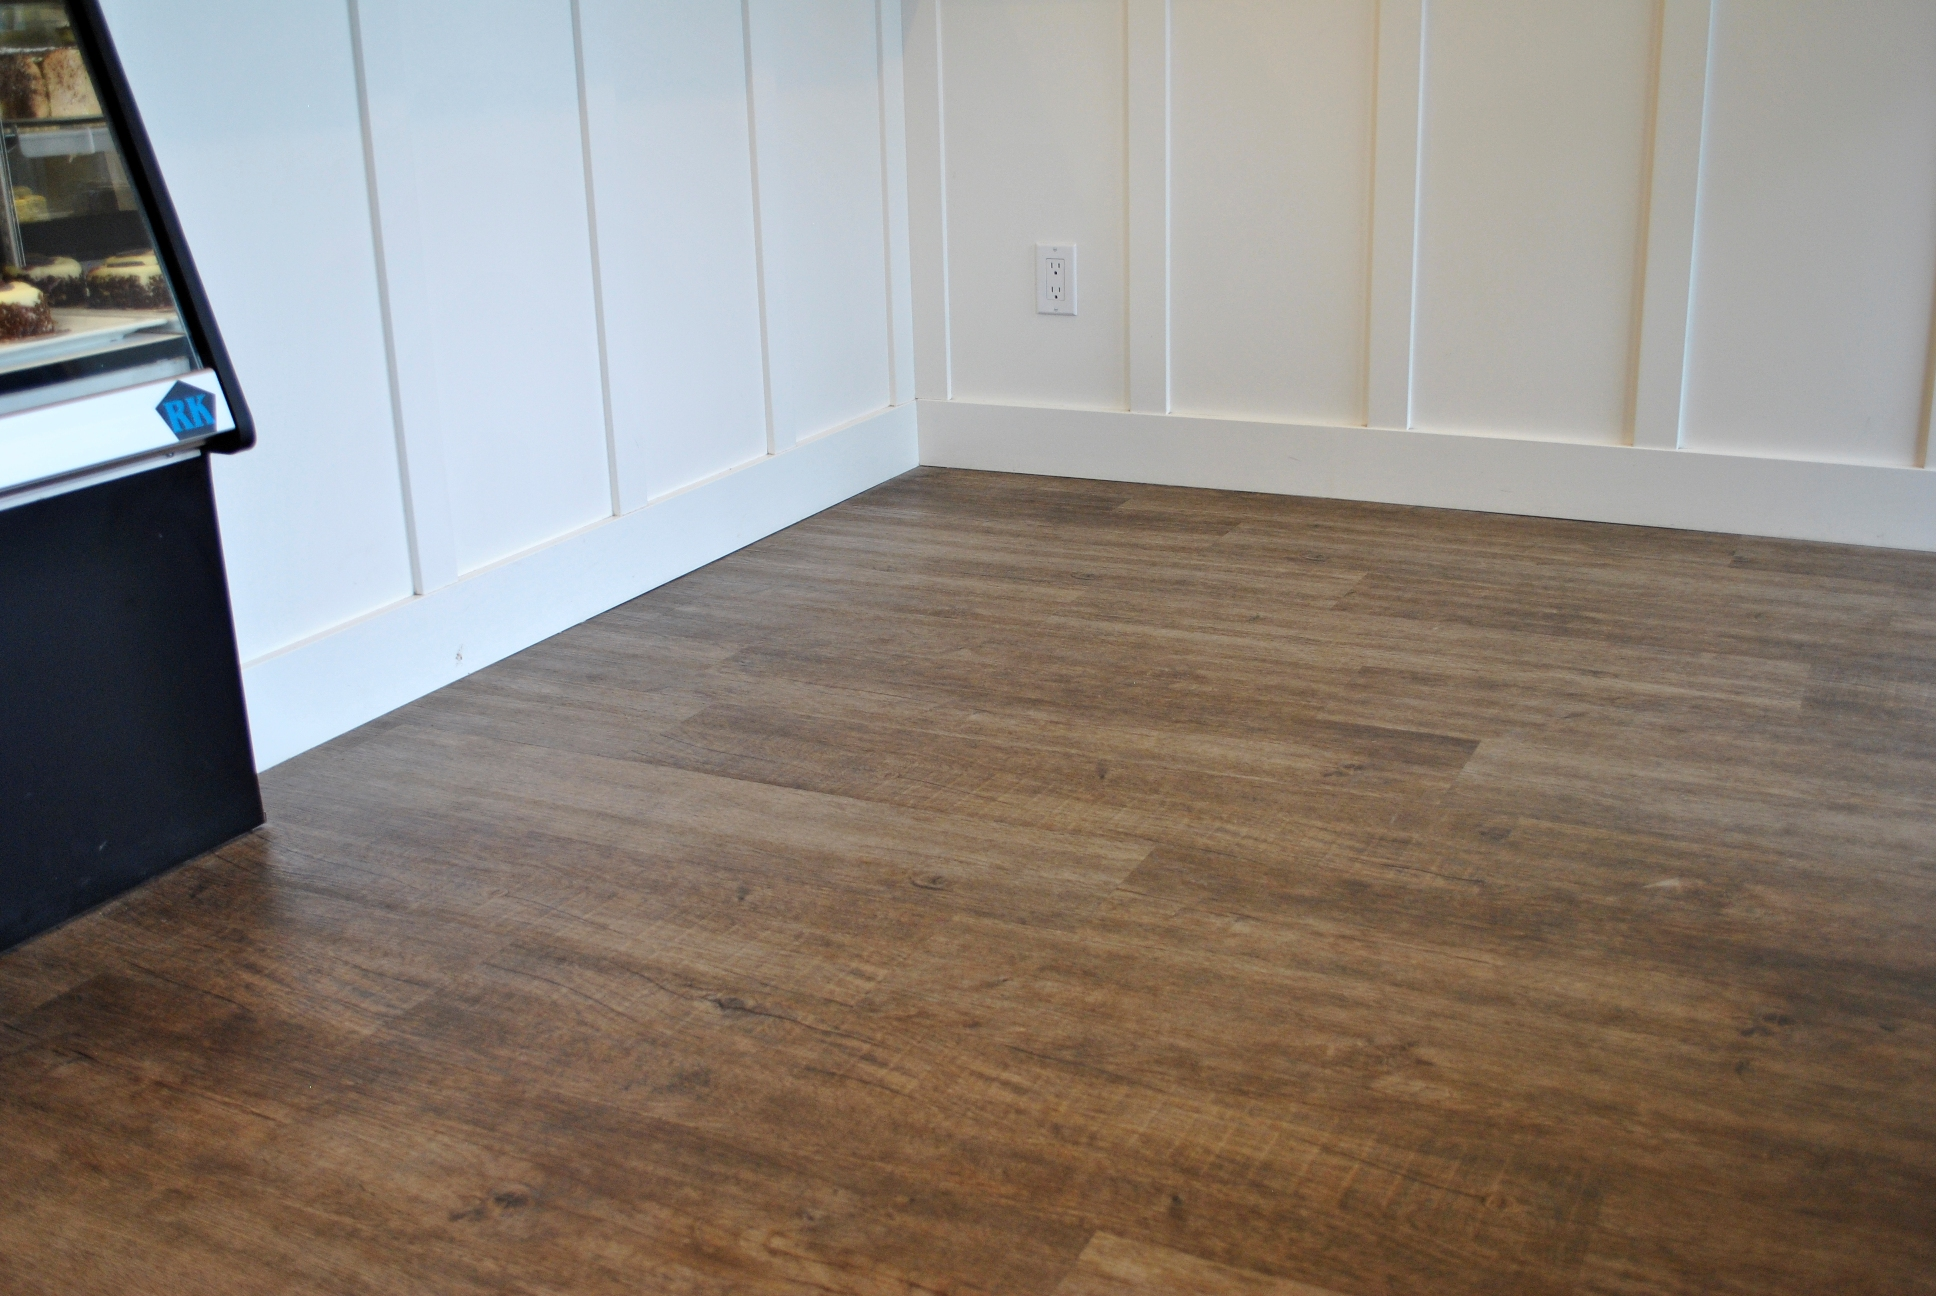 VinylCork Floors by Eco Floor Store